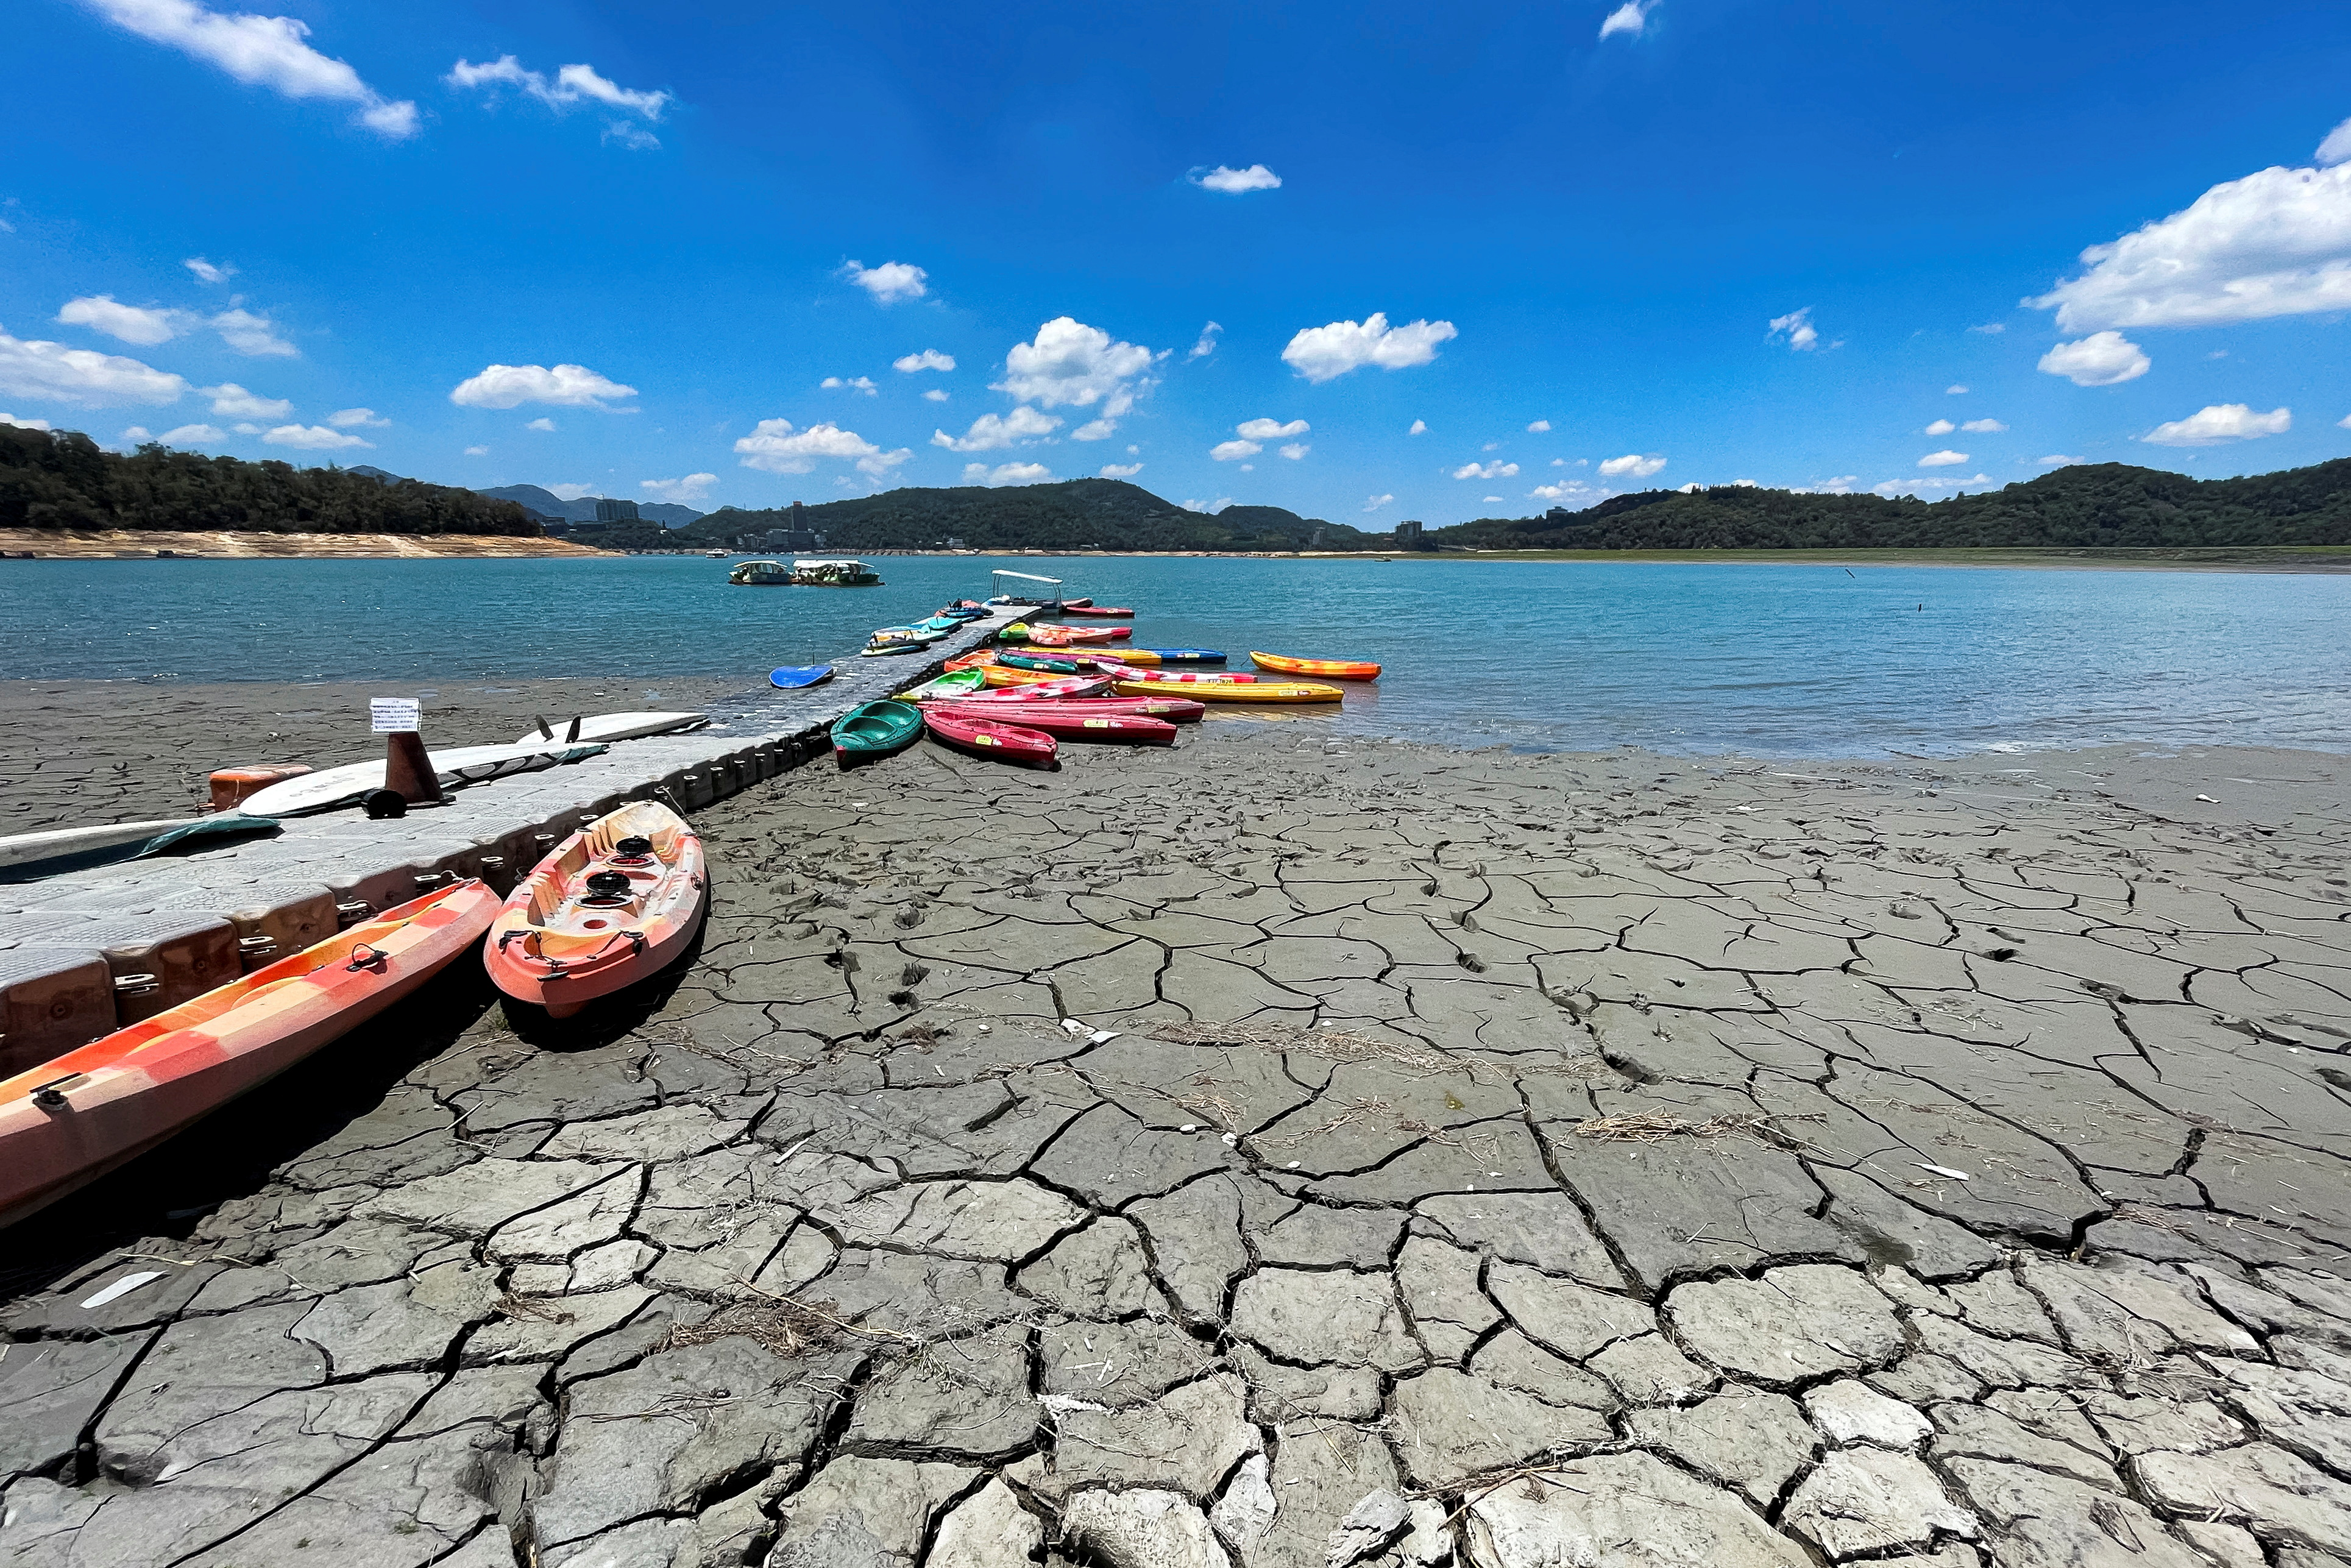 Boats sit at a pier on Sun Moon Lake with low water levels during an islandwide drought, in Nantou, Taiwan May 15, 2021. REUTERS/Annabelle Chih